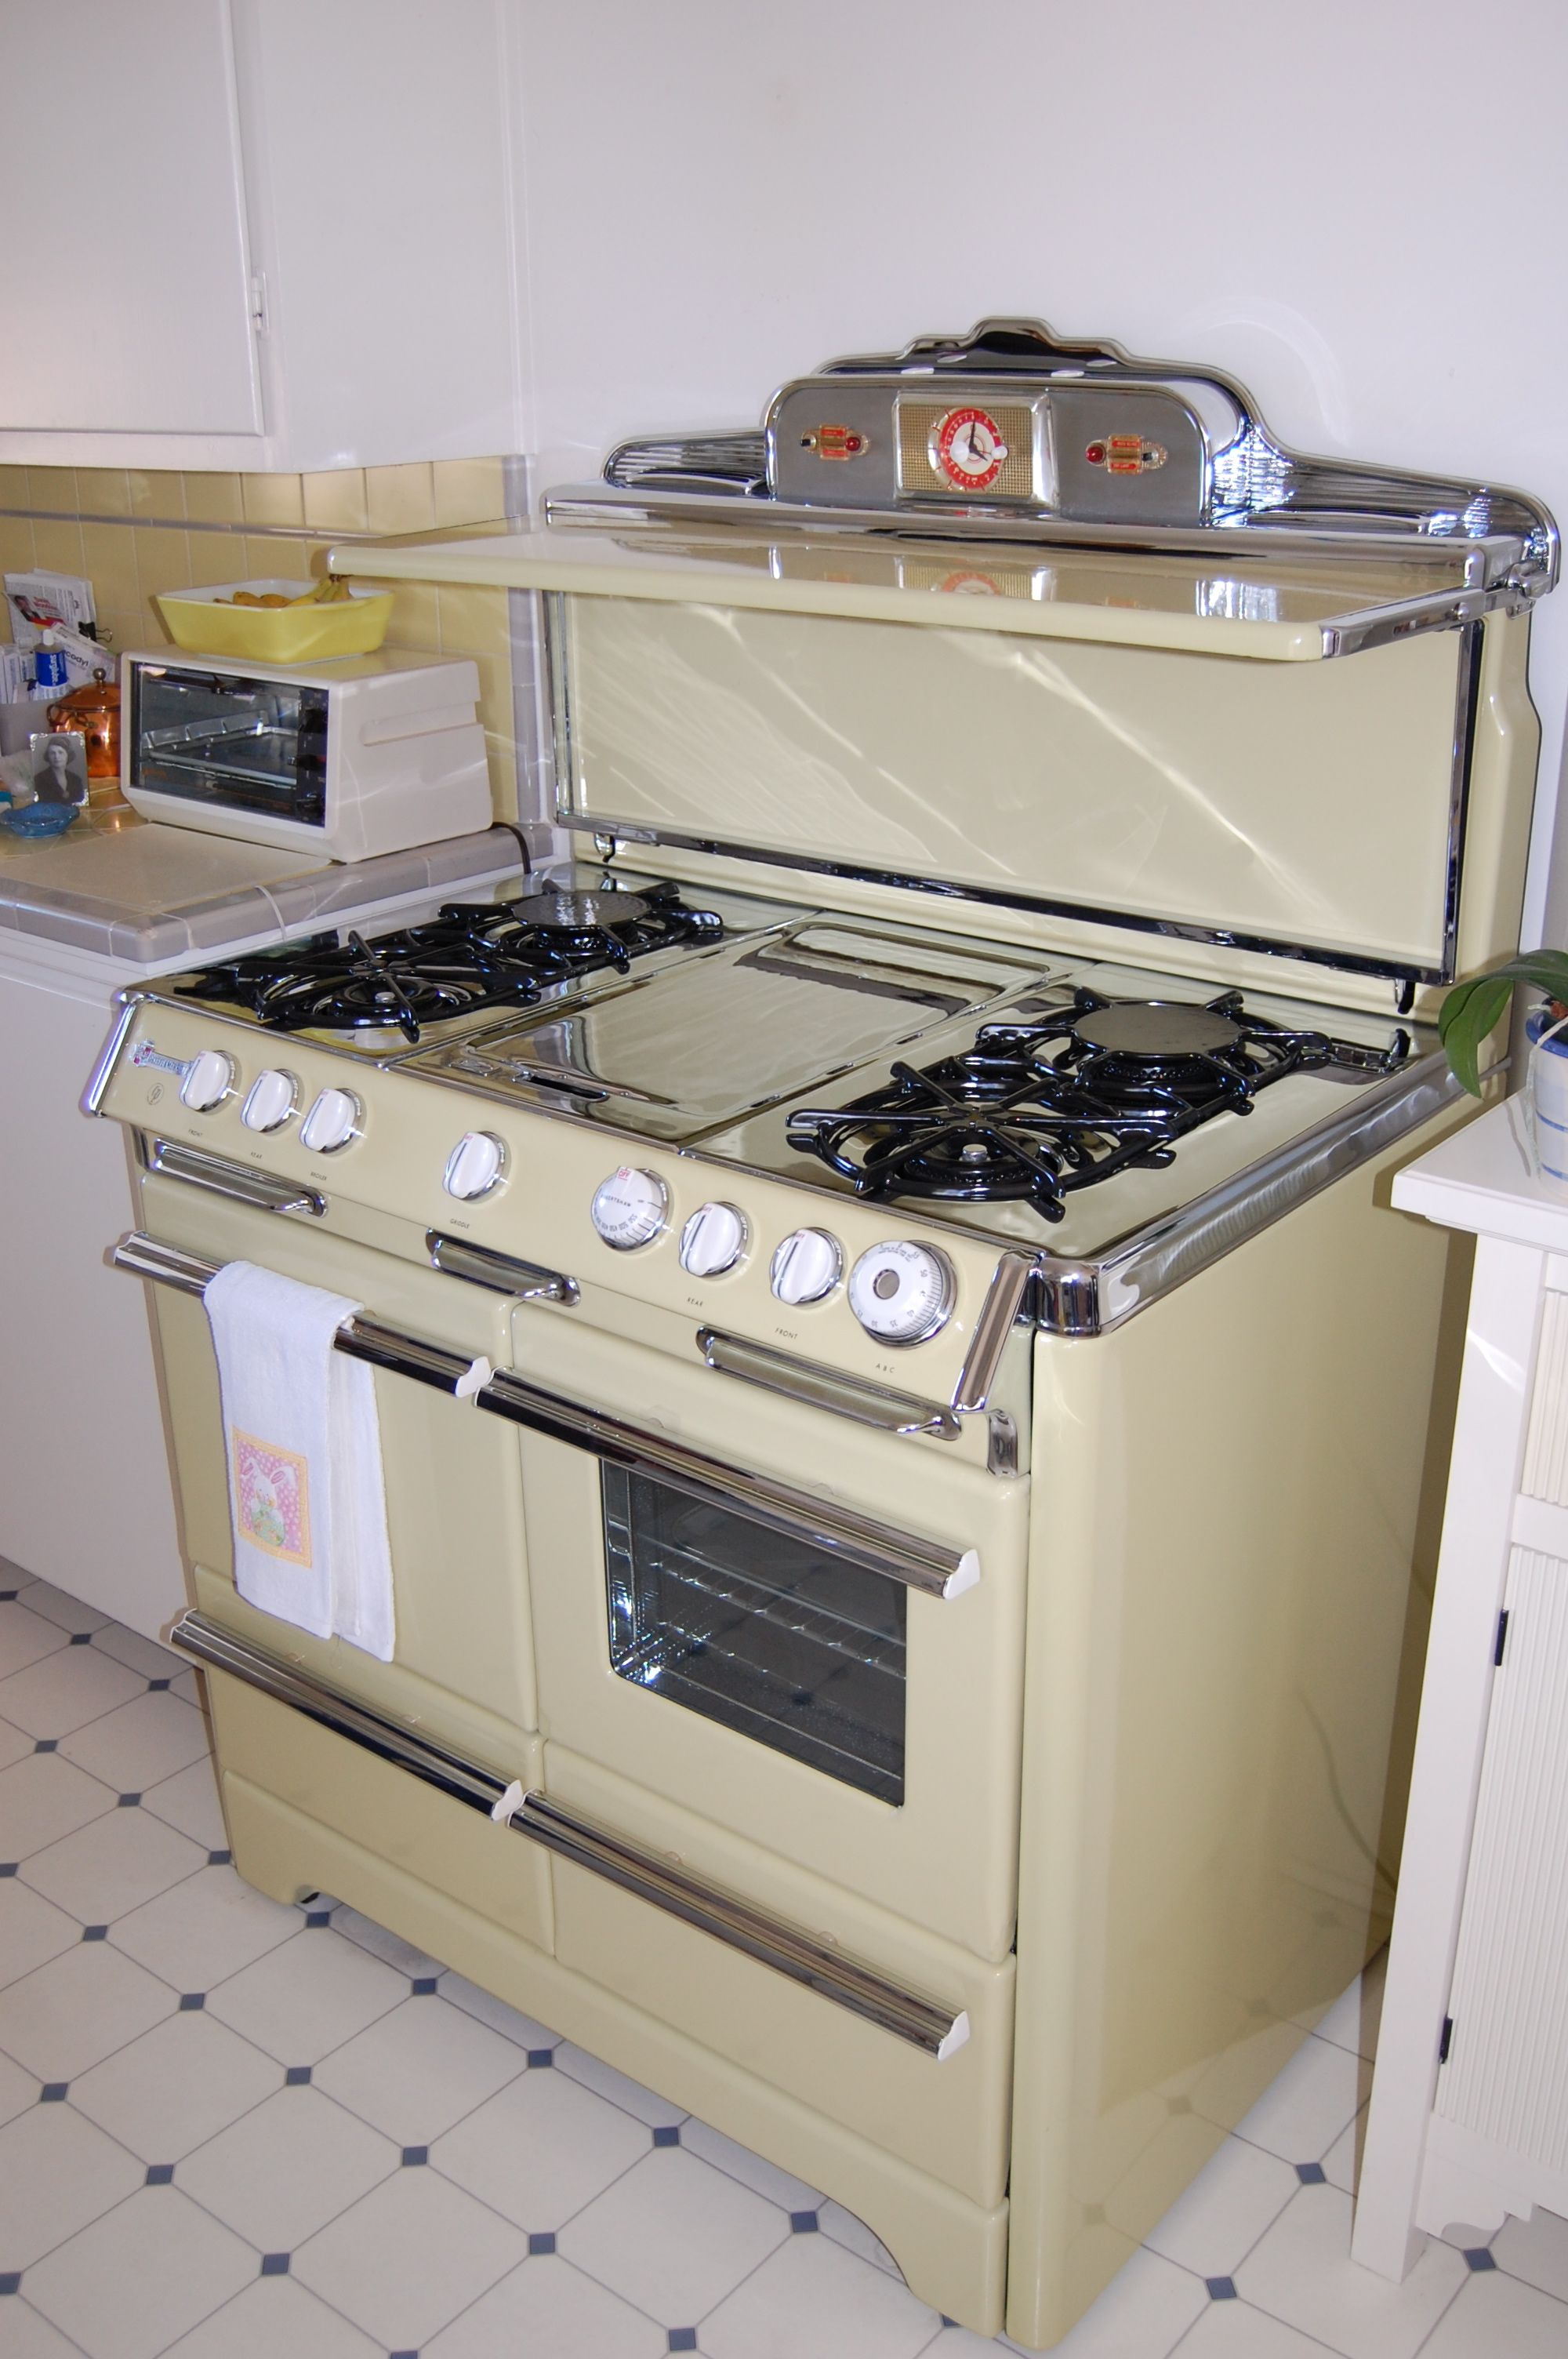 1950s O Keefe And Merritt Oven With Oven Broiler Original Color Vintage Stoves Vintage Kitchen Cabinets Retro Kitchen